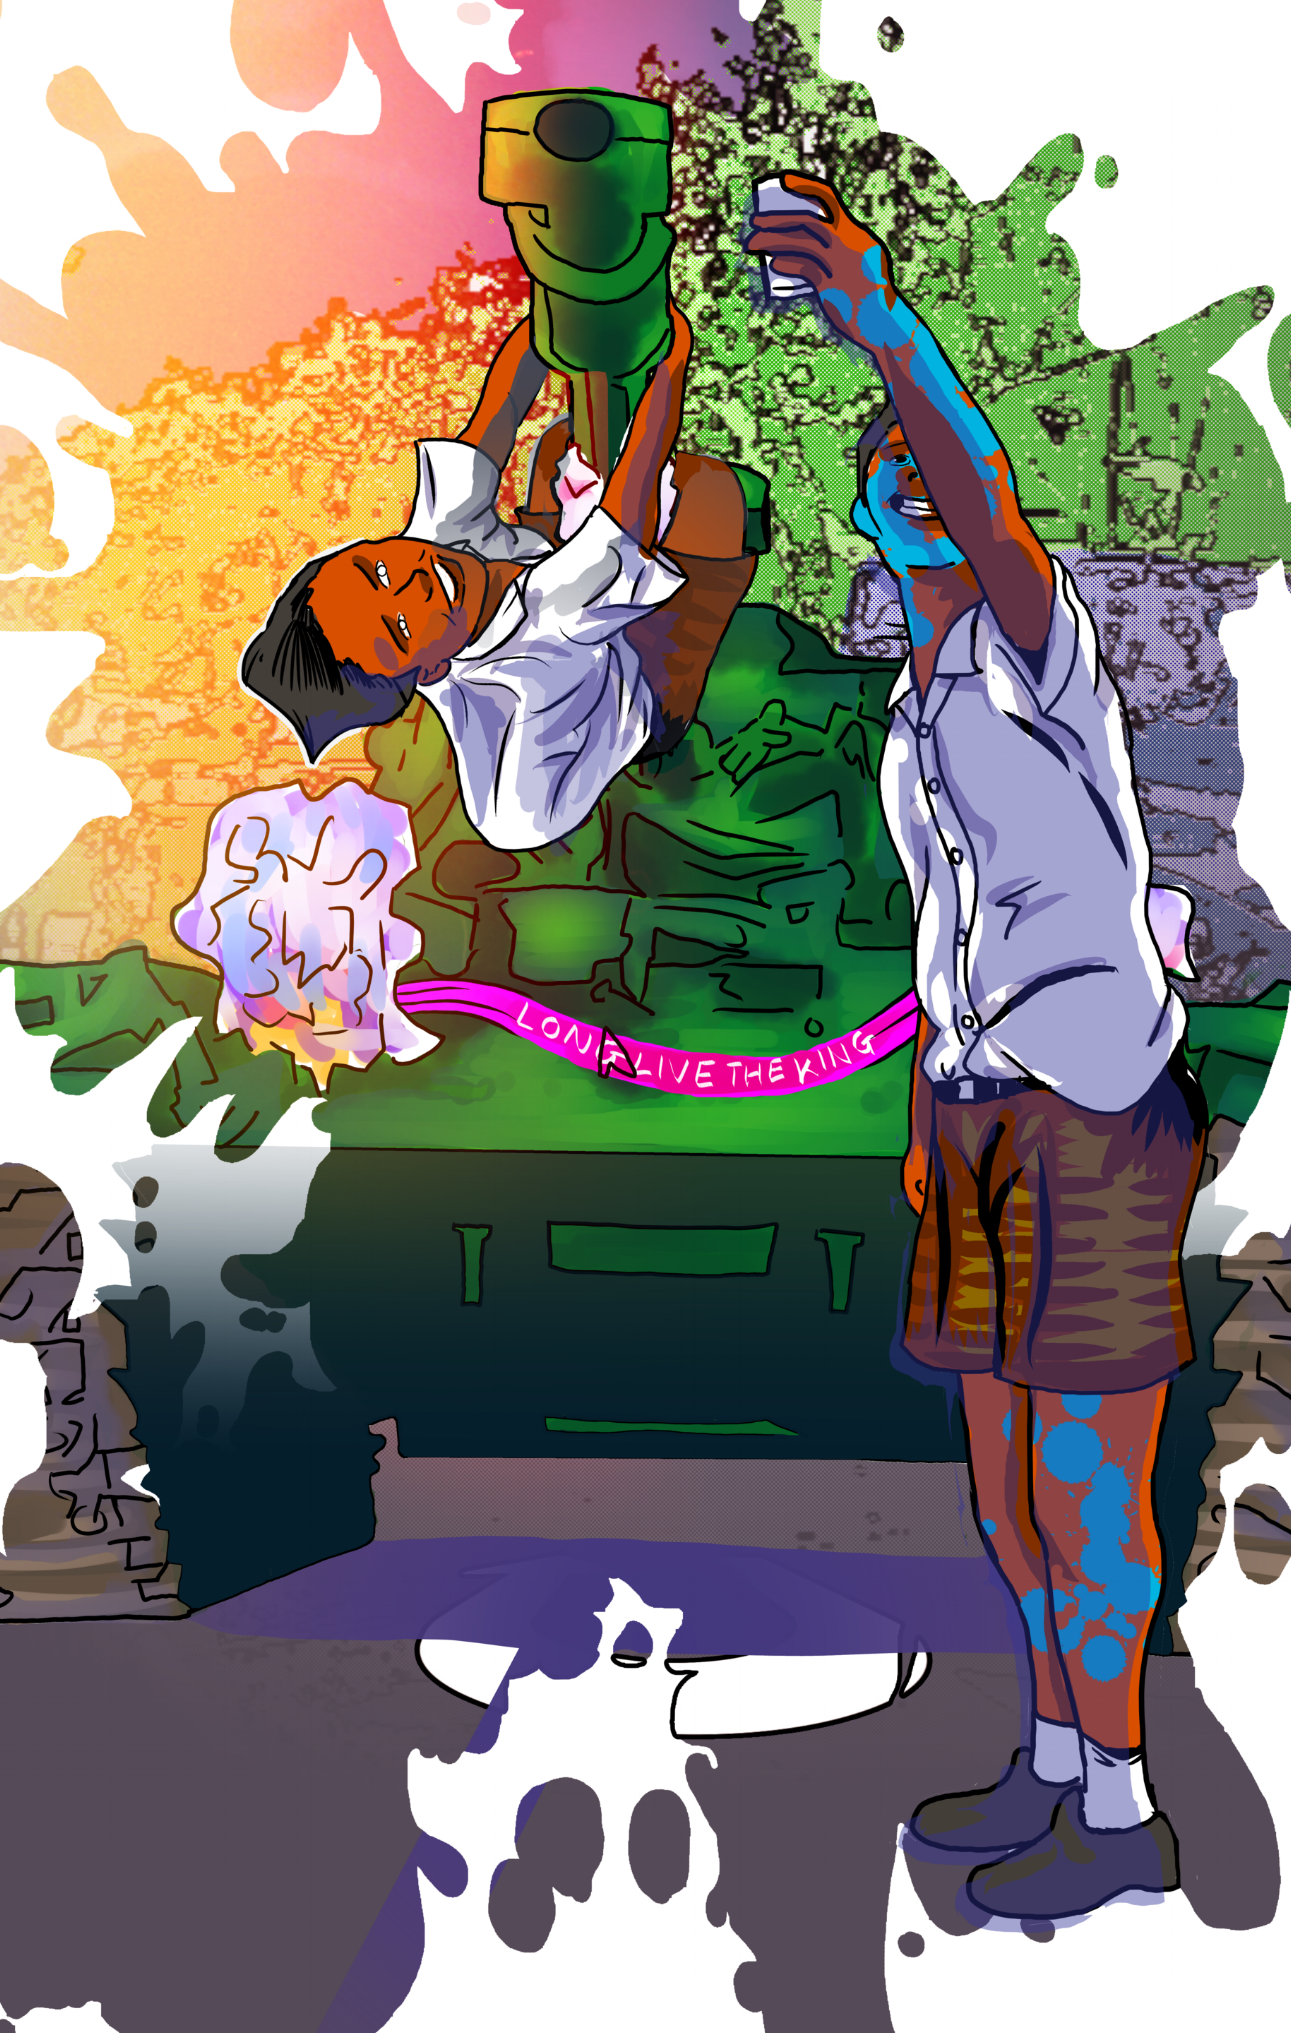 War Part 1 Issue 3 full color cover no title.png